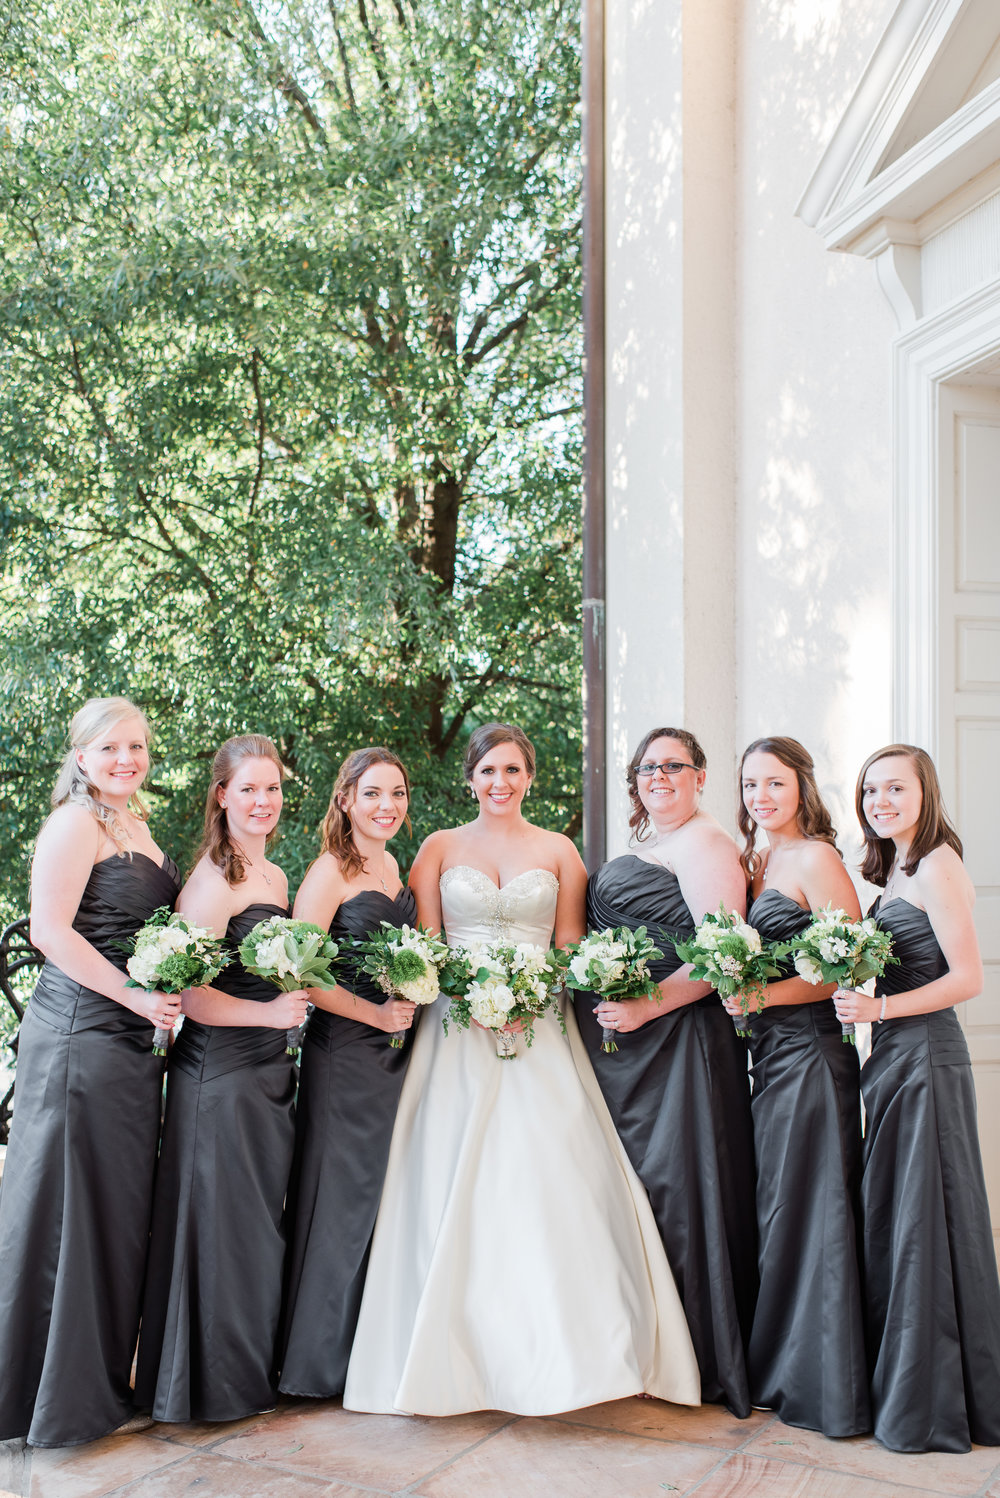 Charcoal Bridesmaid Dresses - A Black Tie, South Carolina Commerce Club Wedding